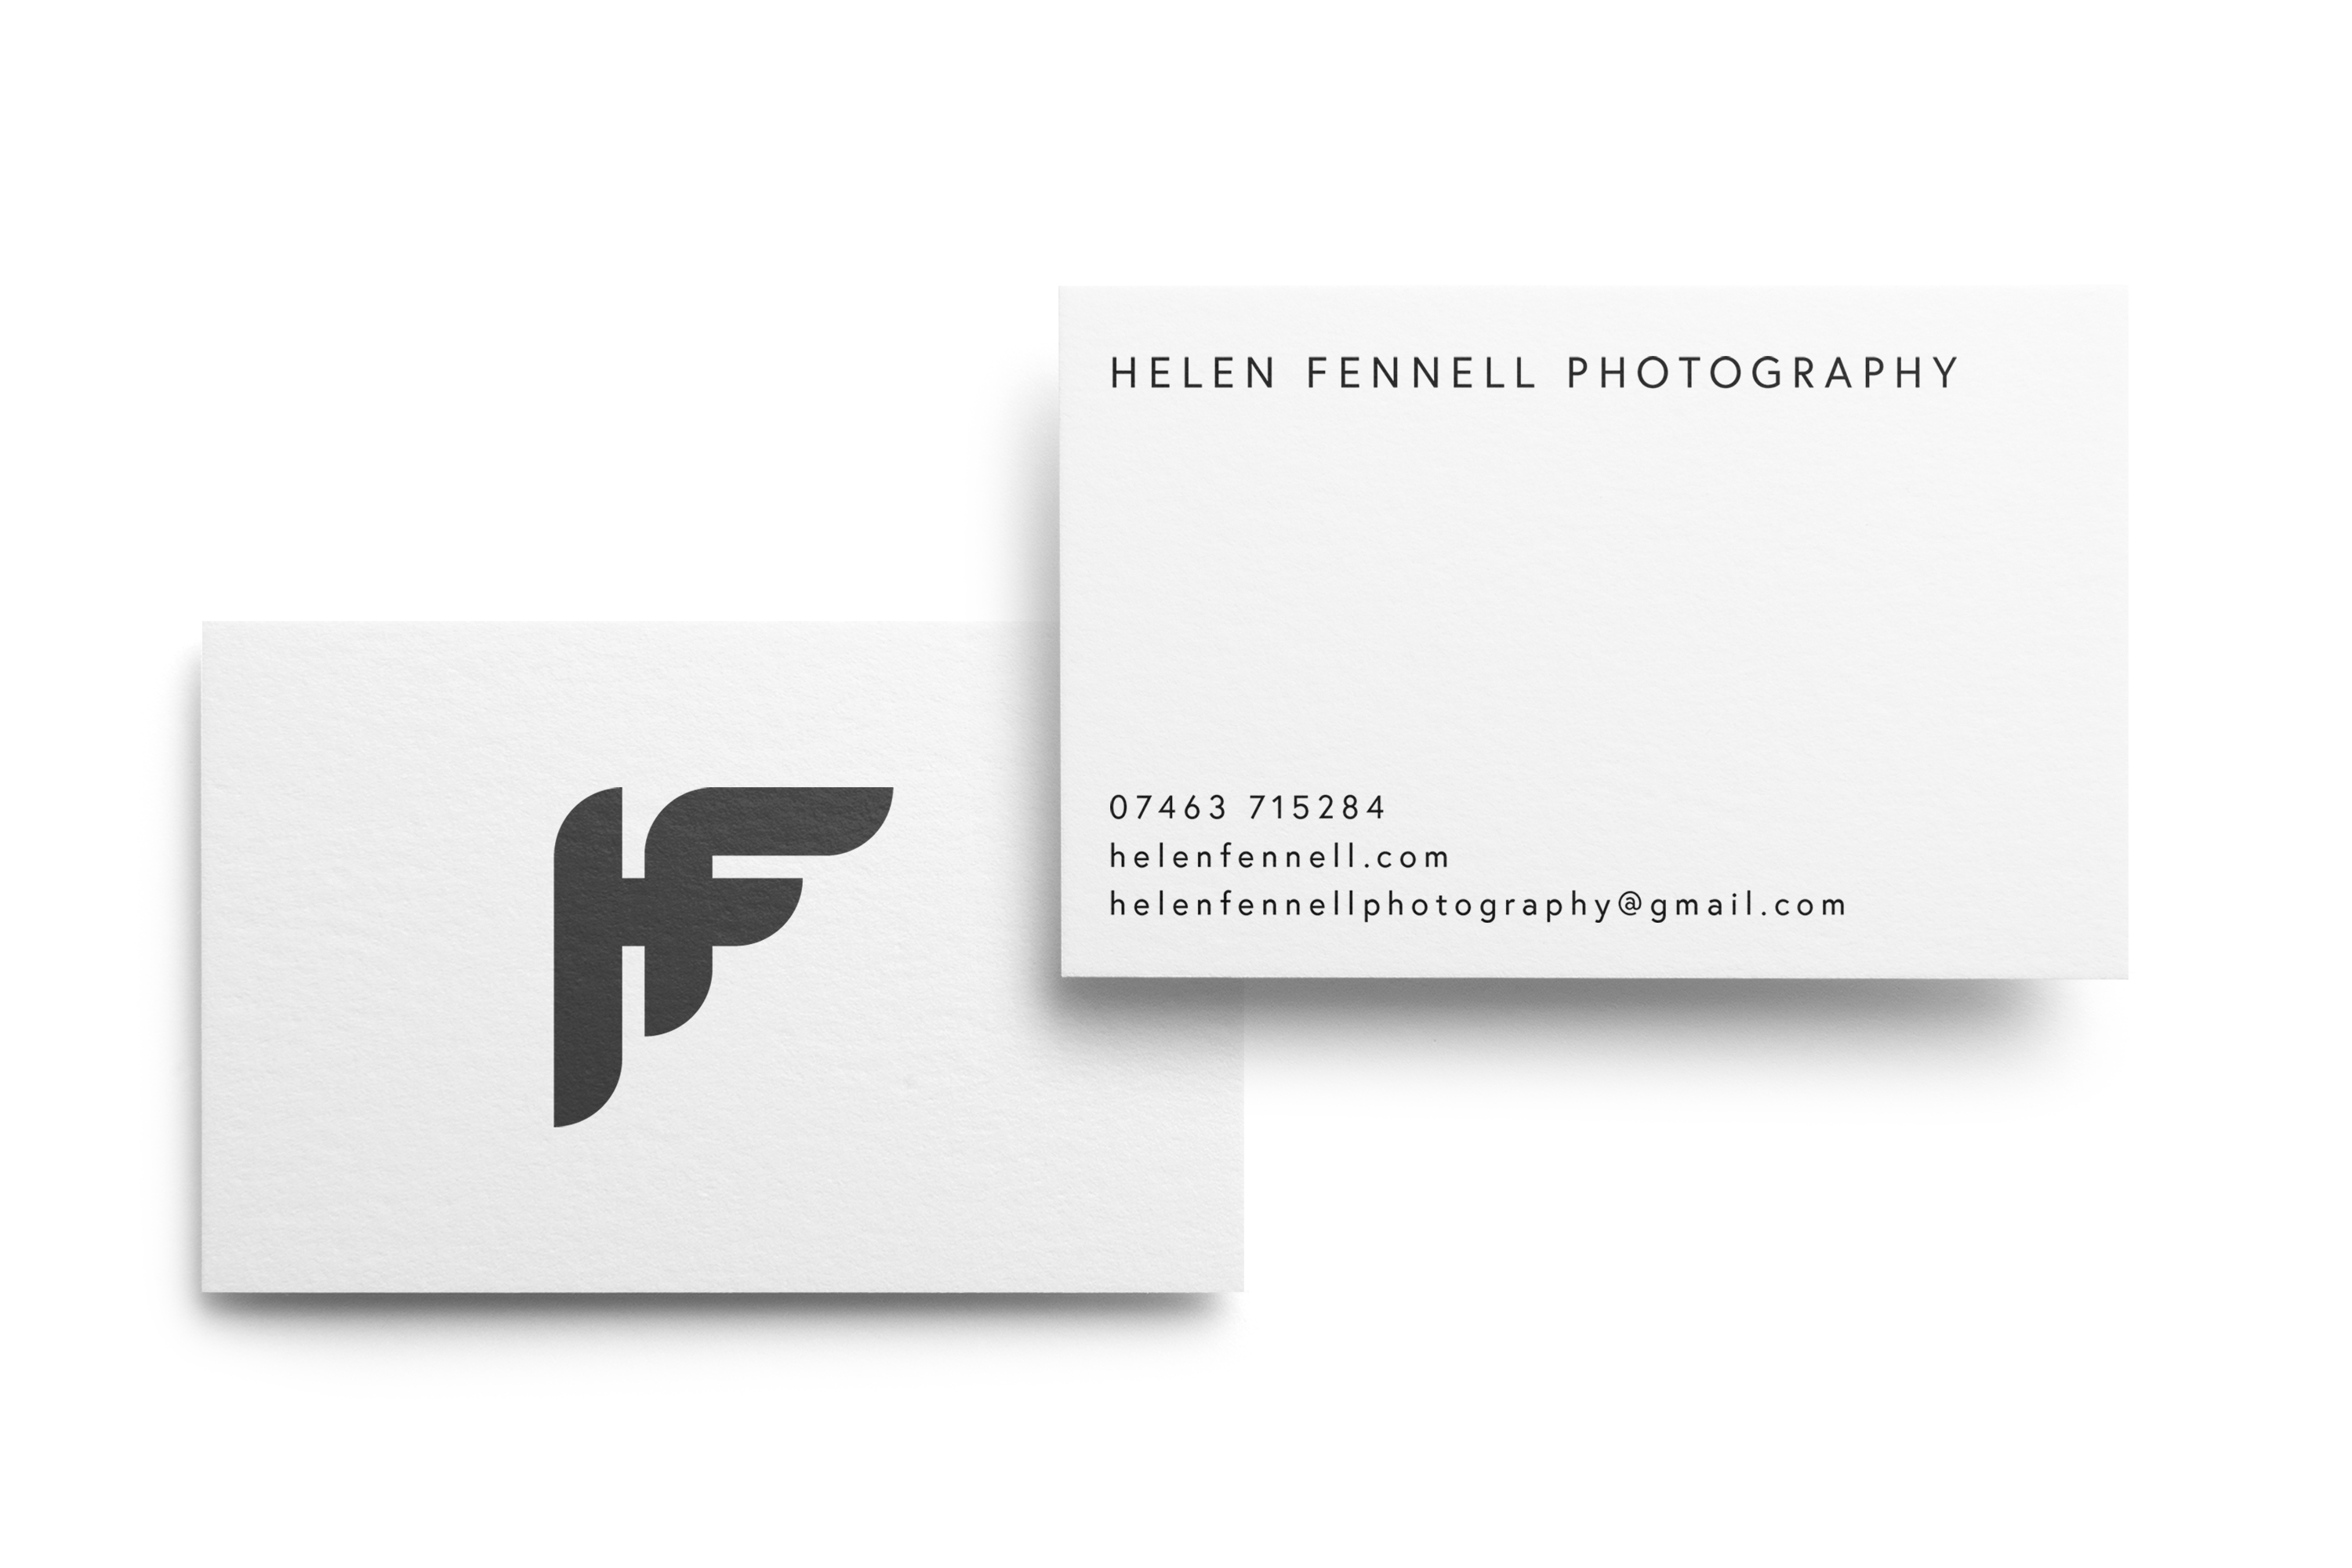 Helen Fennell Business Cards